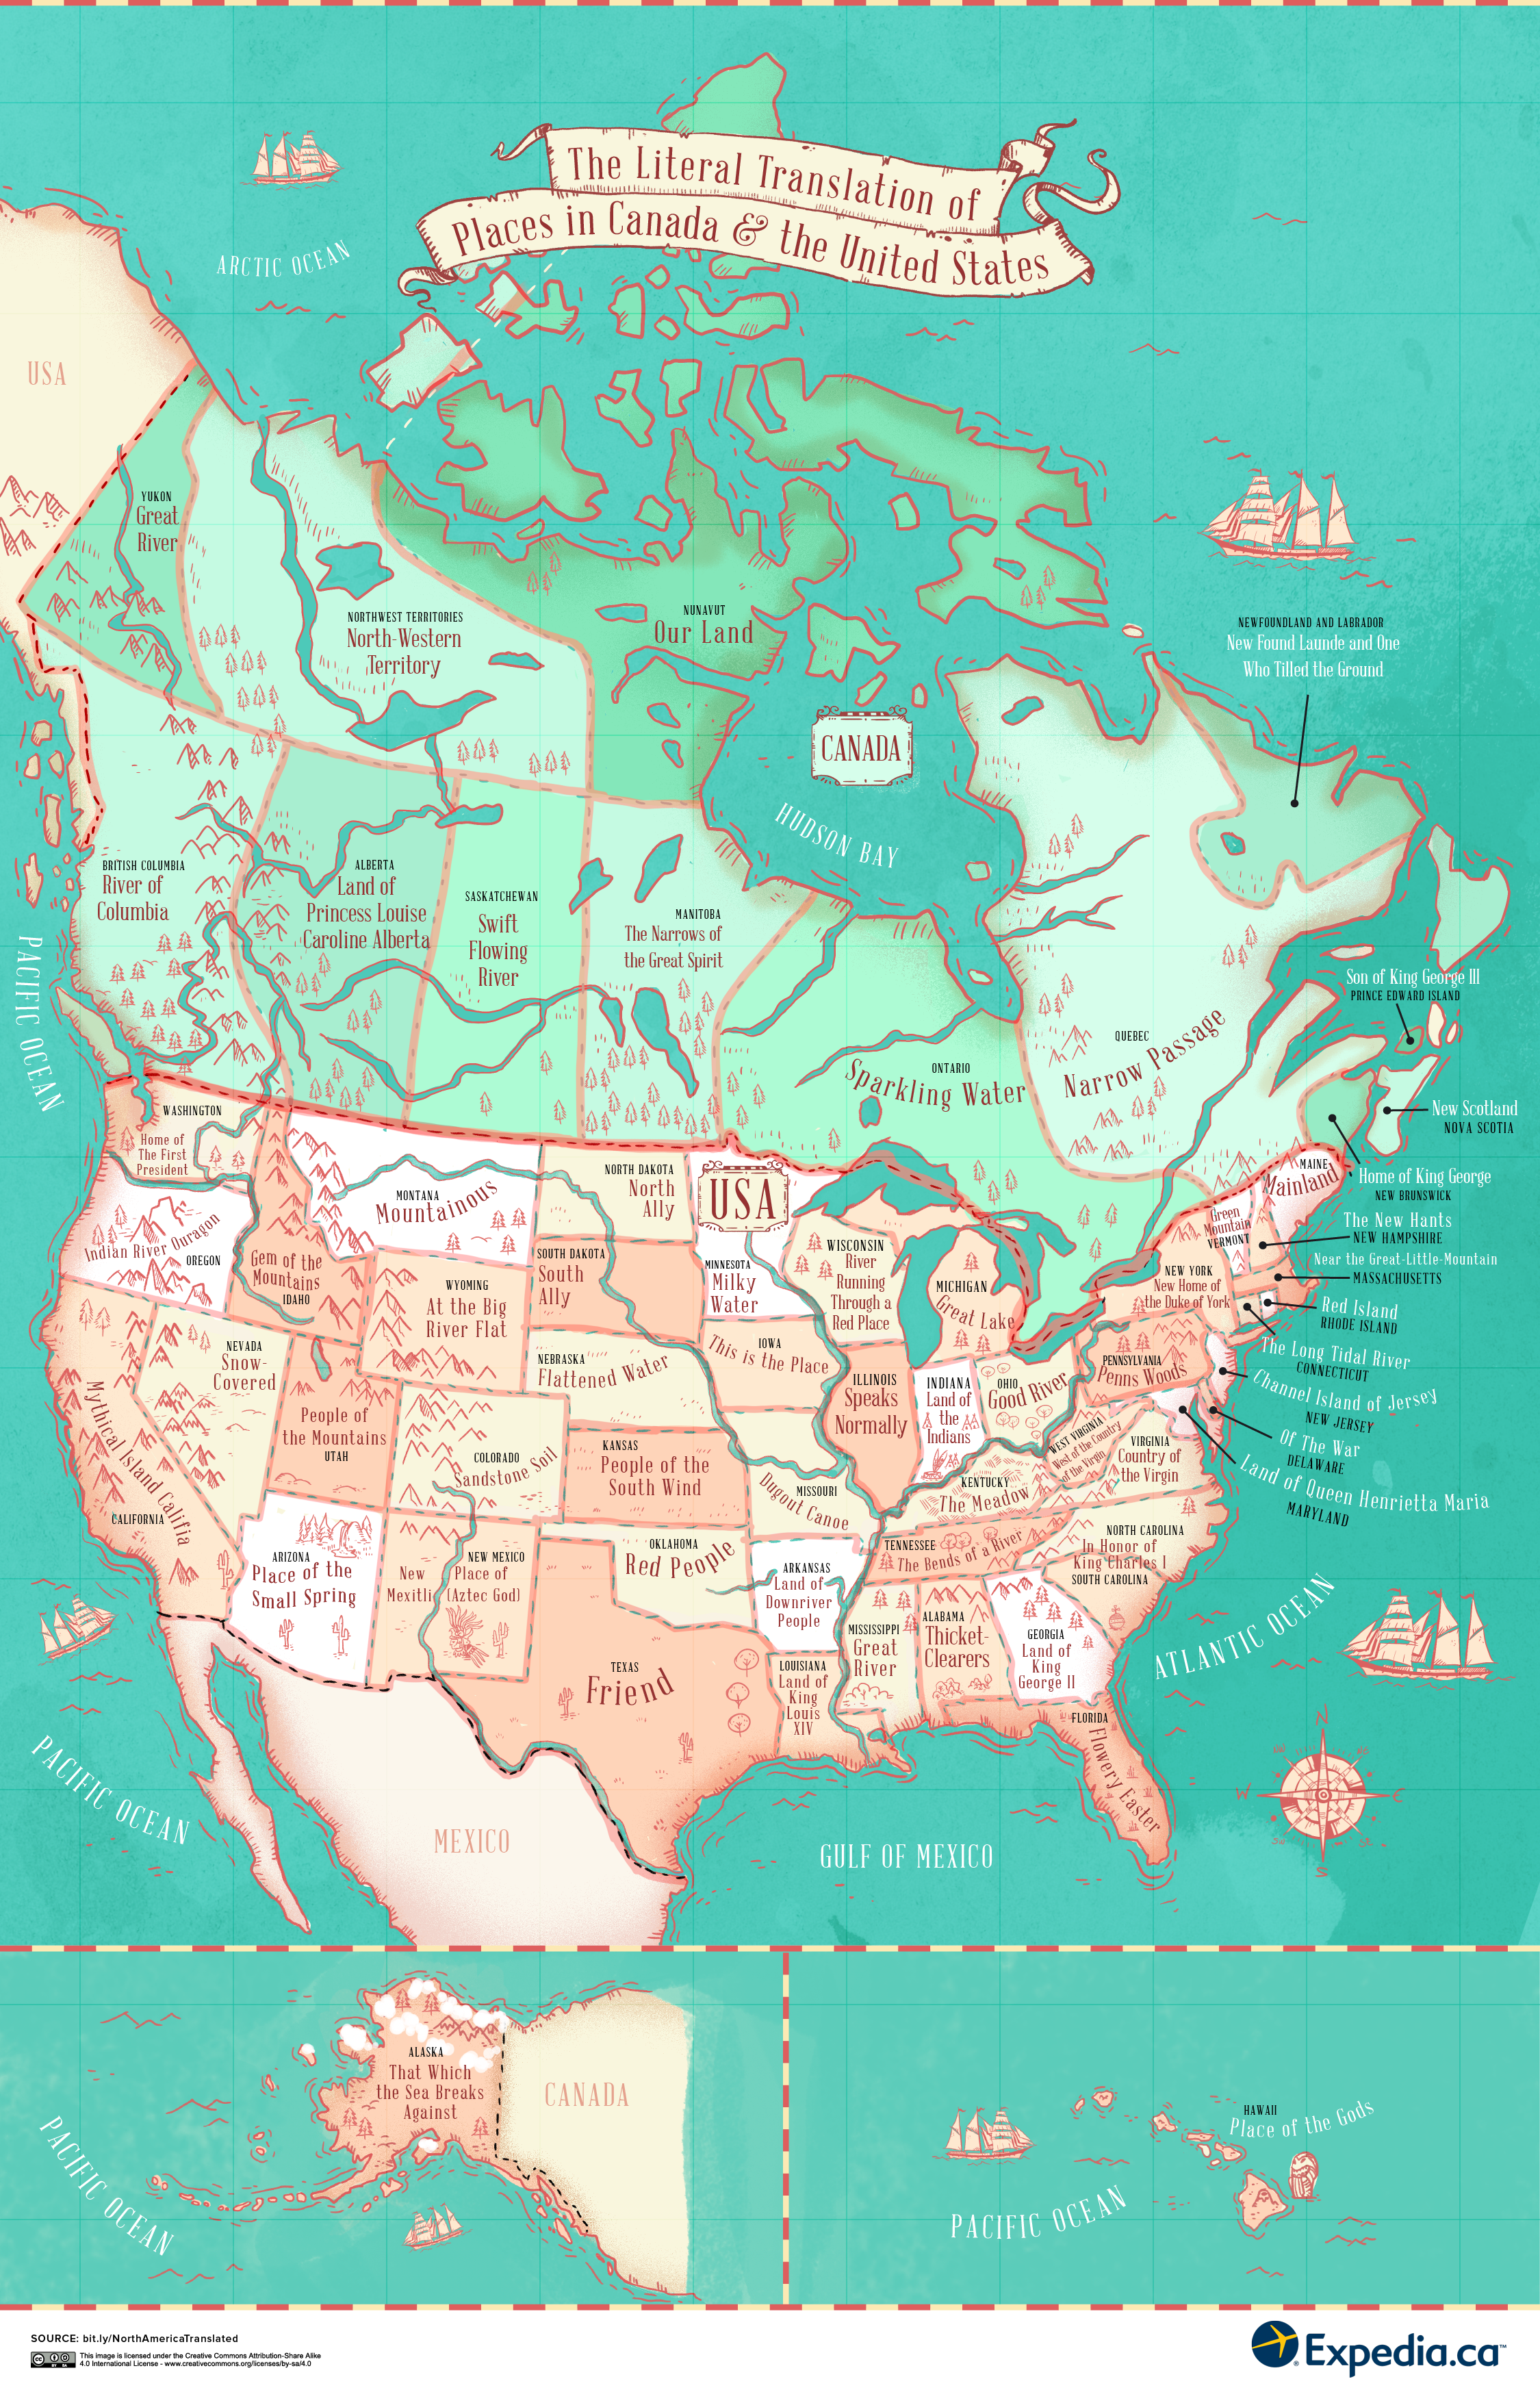 Map Of Canada And United States With Names The literal translation of places in the United States and Canada